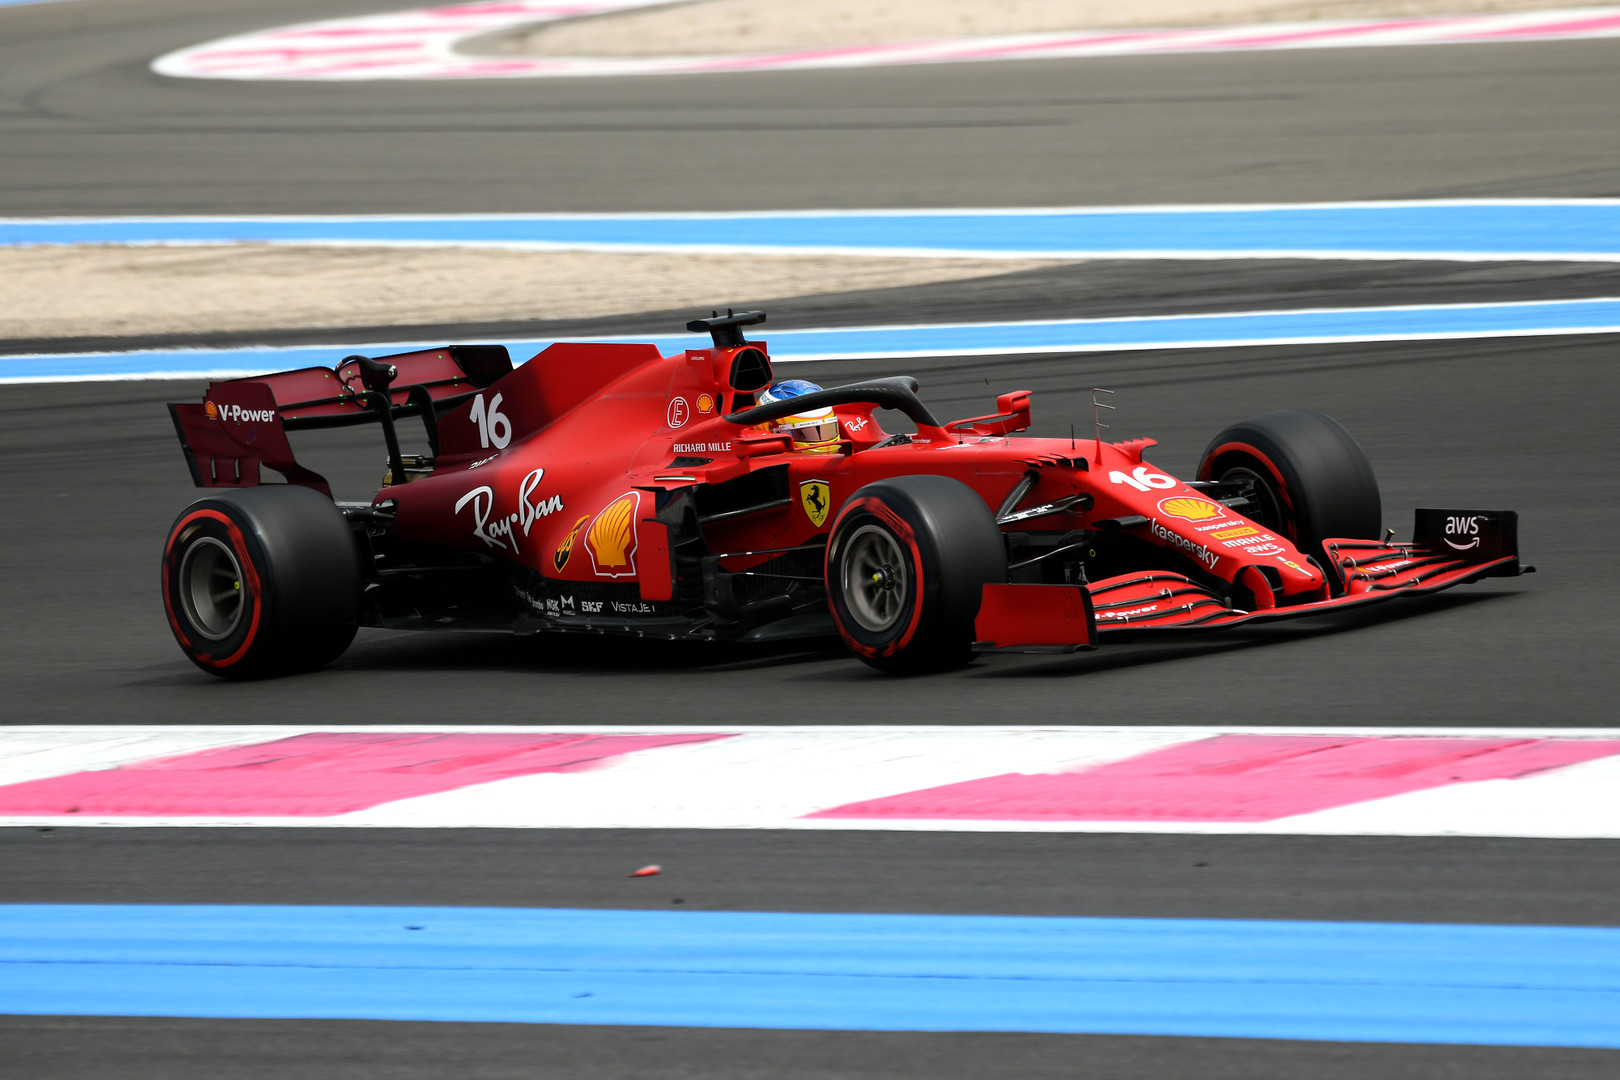 Leclerc struggling to 'drive around' front end problem